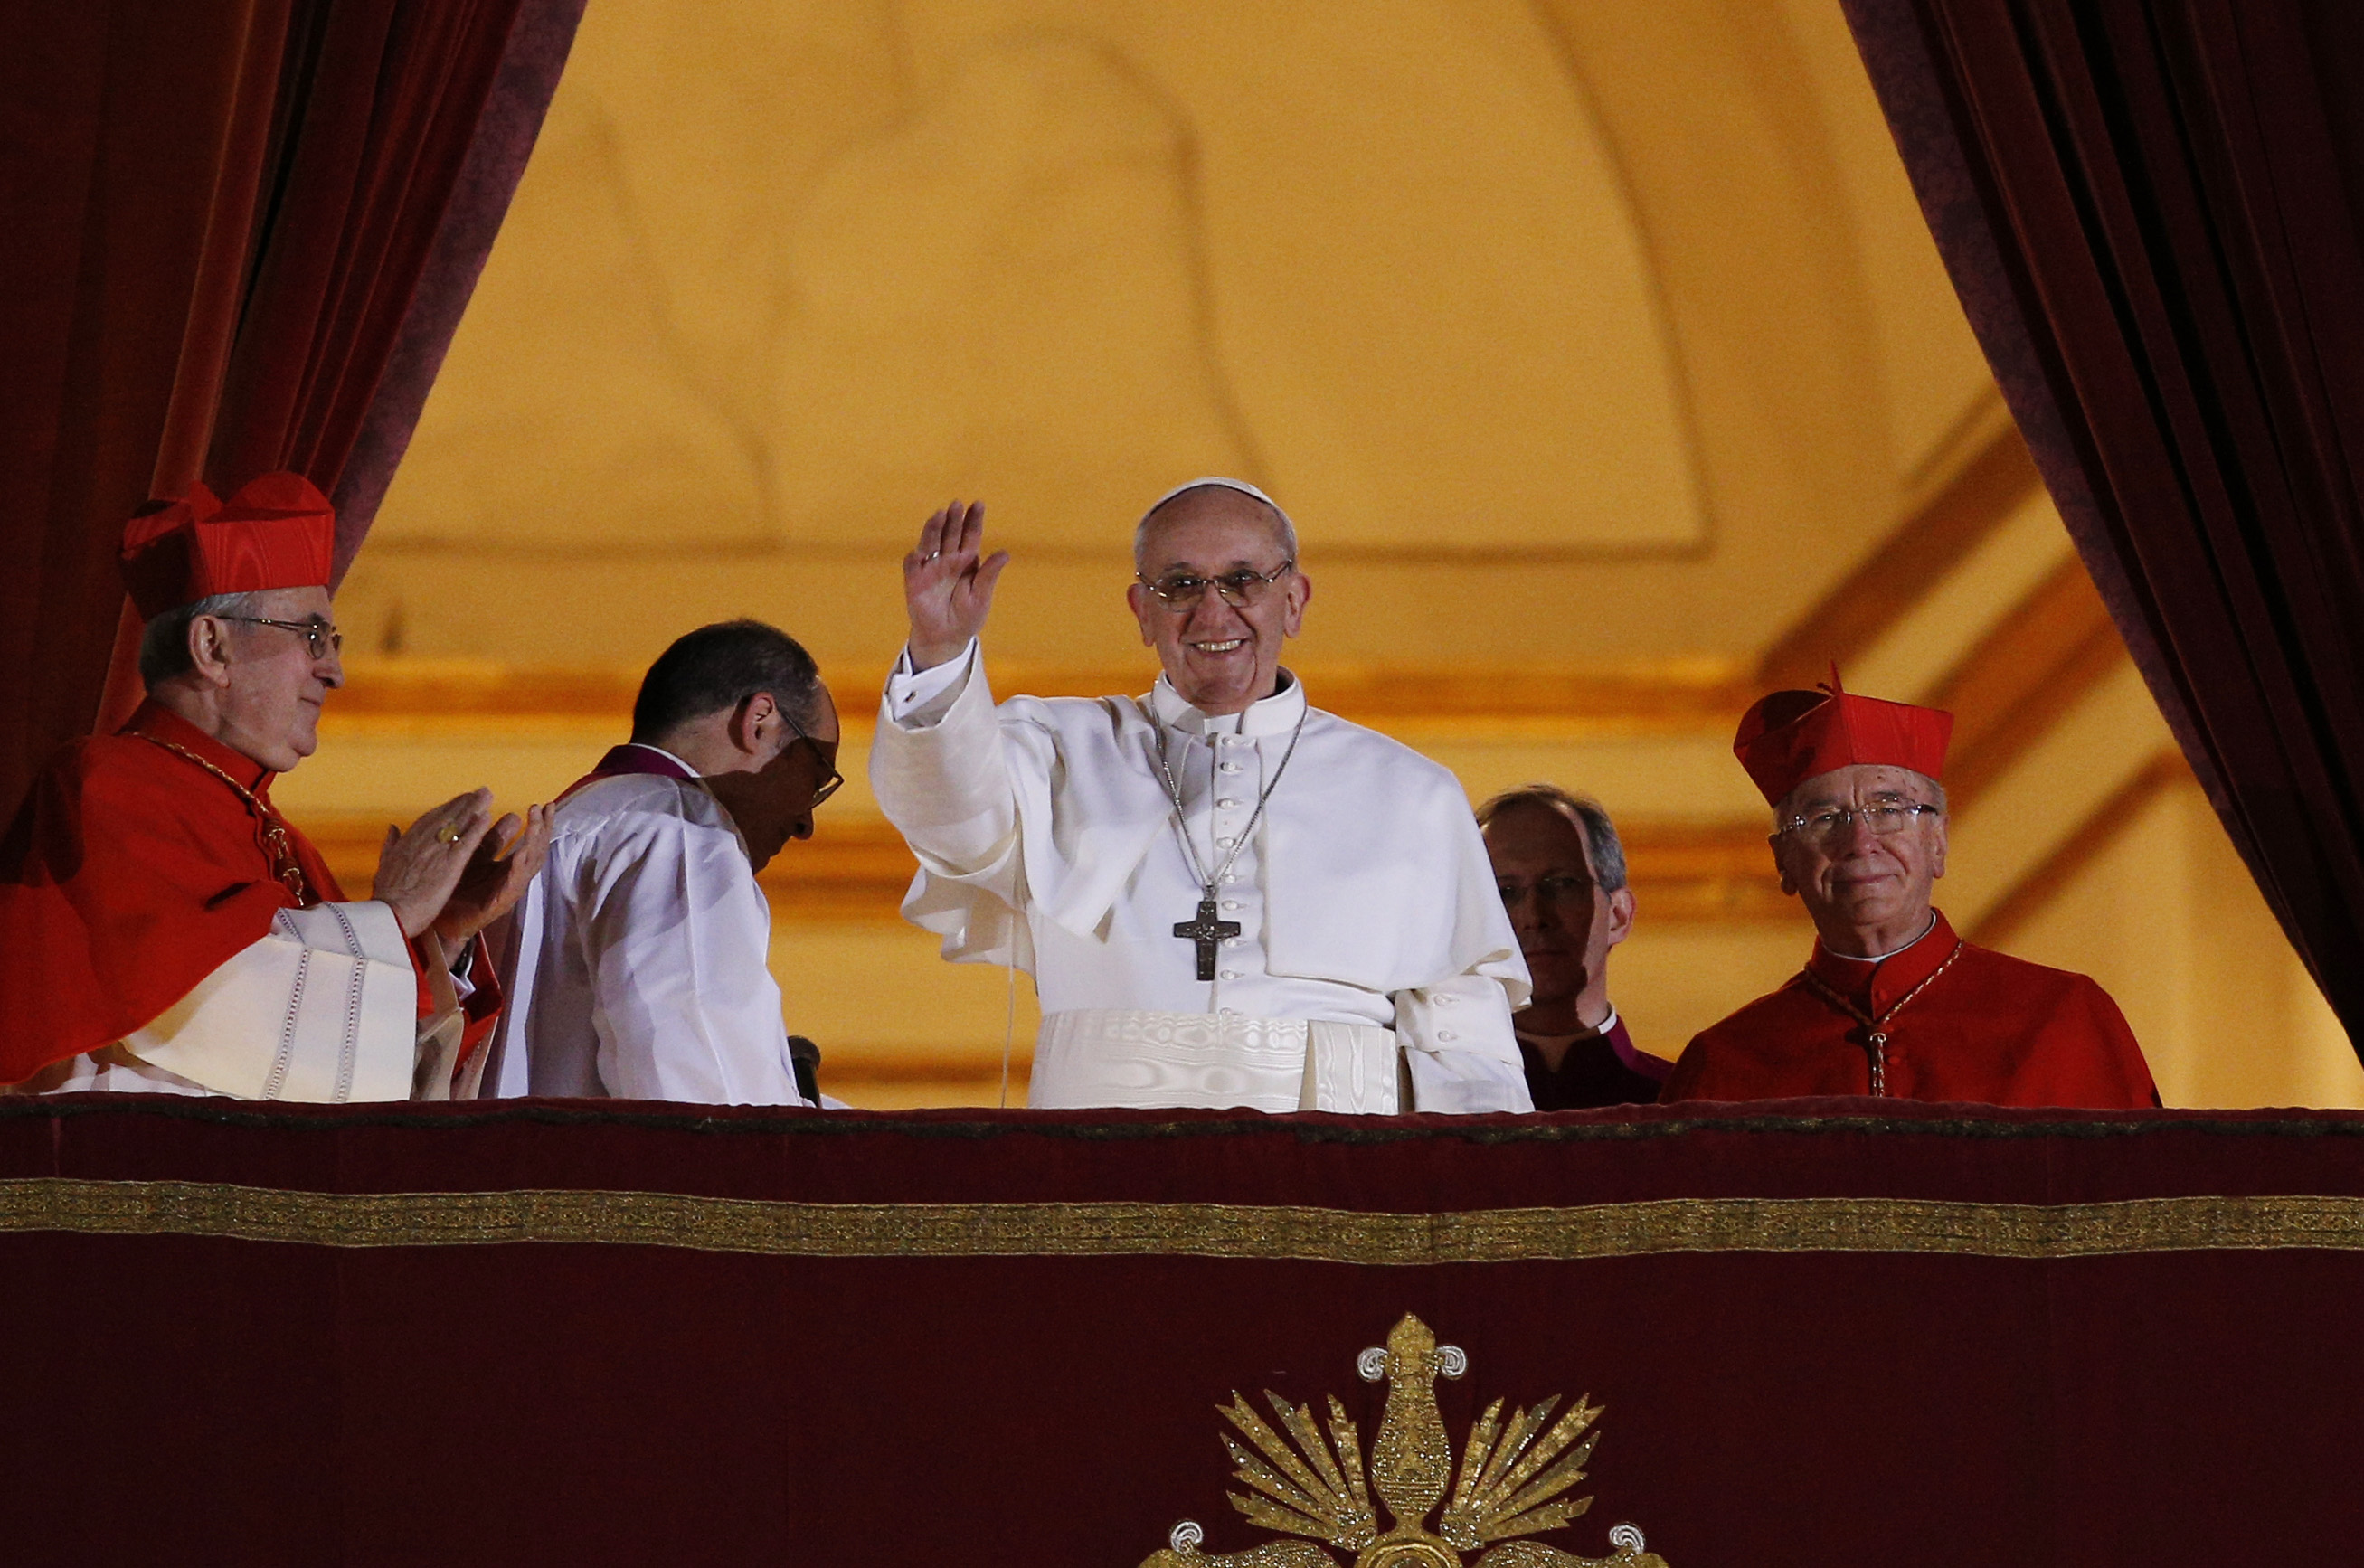 Pope Francis waves from the central balcony of St. Peter's Basilica following his election March 13, 2013.